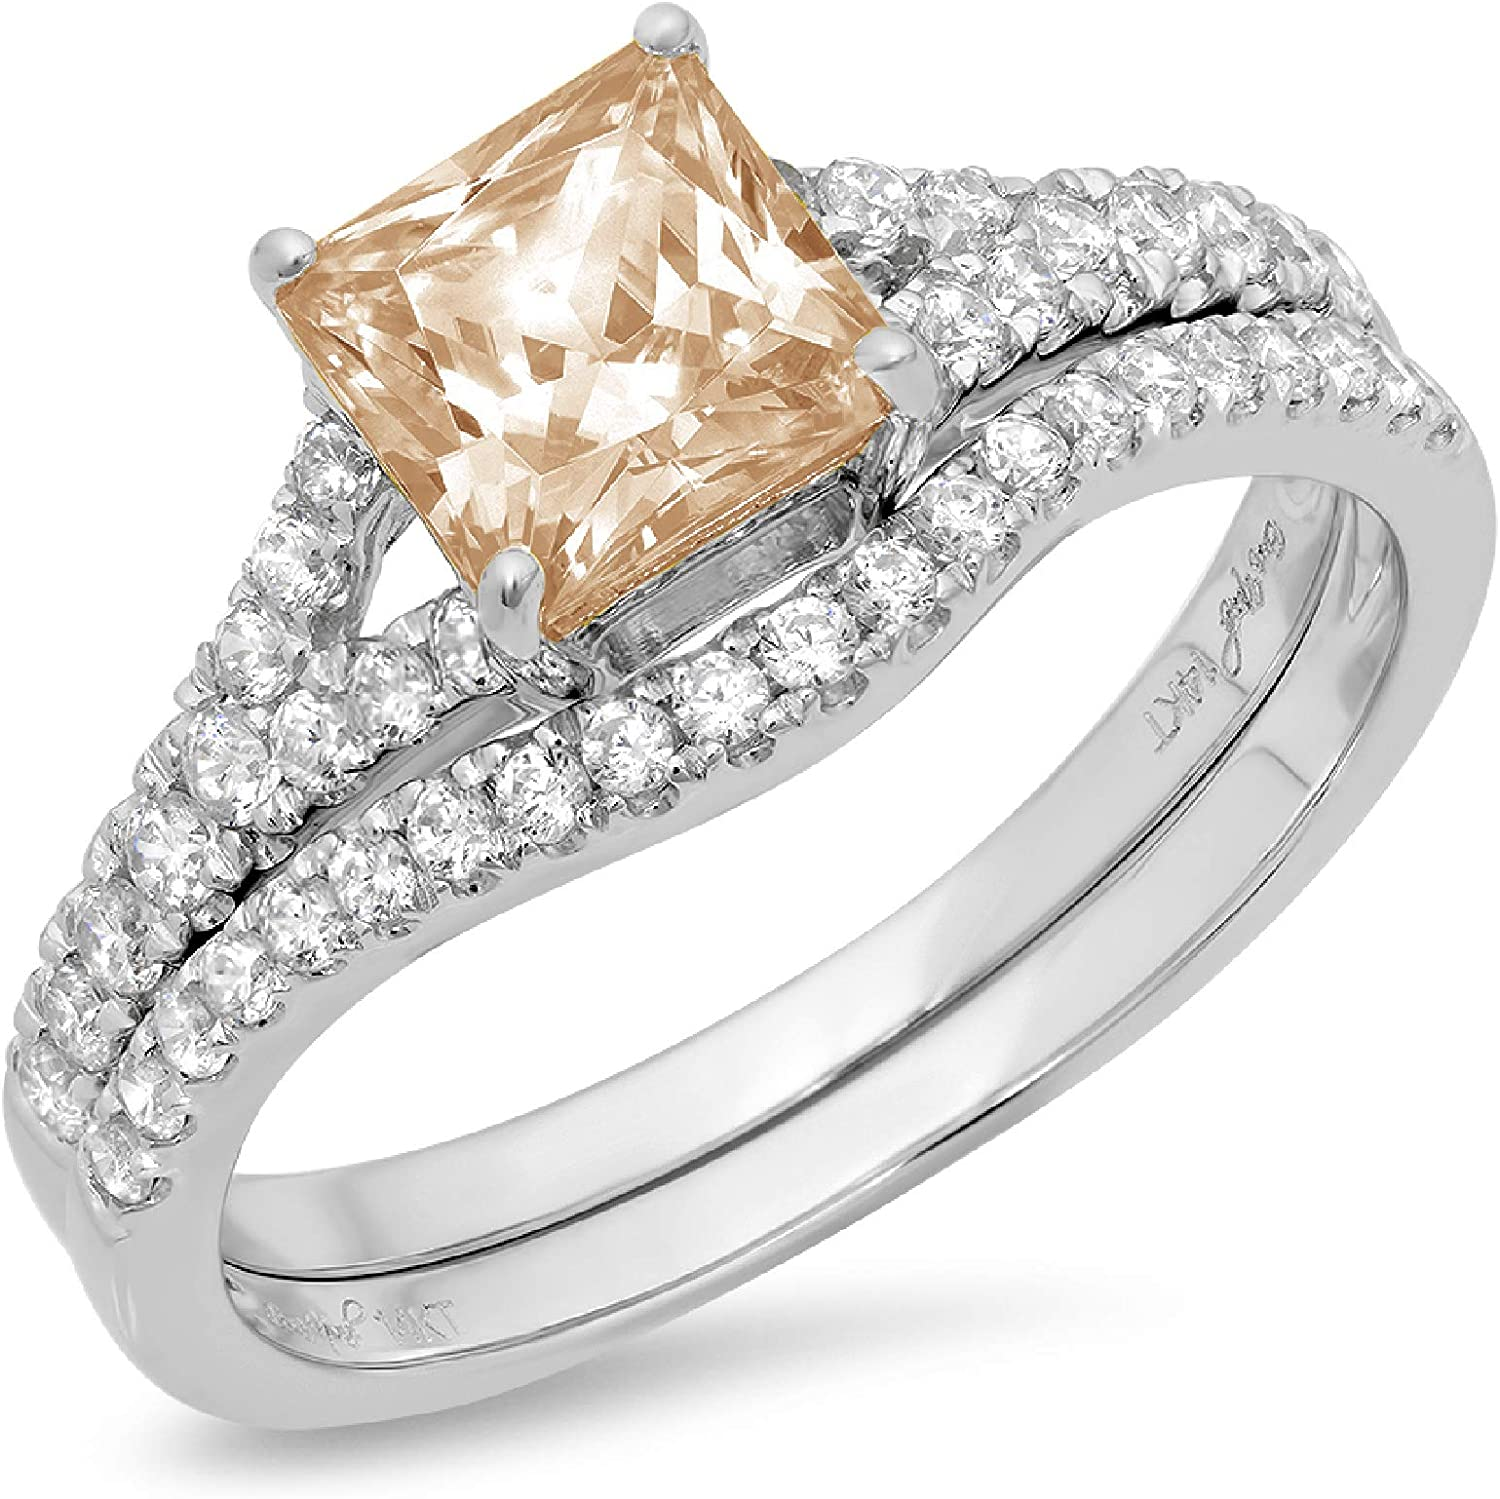 1.98ct Princess Cut Pave Solitaire with Accent Brown Champagne Simulated Diamond Designer Statement Classic Curved Ring Band Set Real Solid 14k White Gold